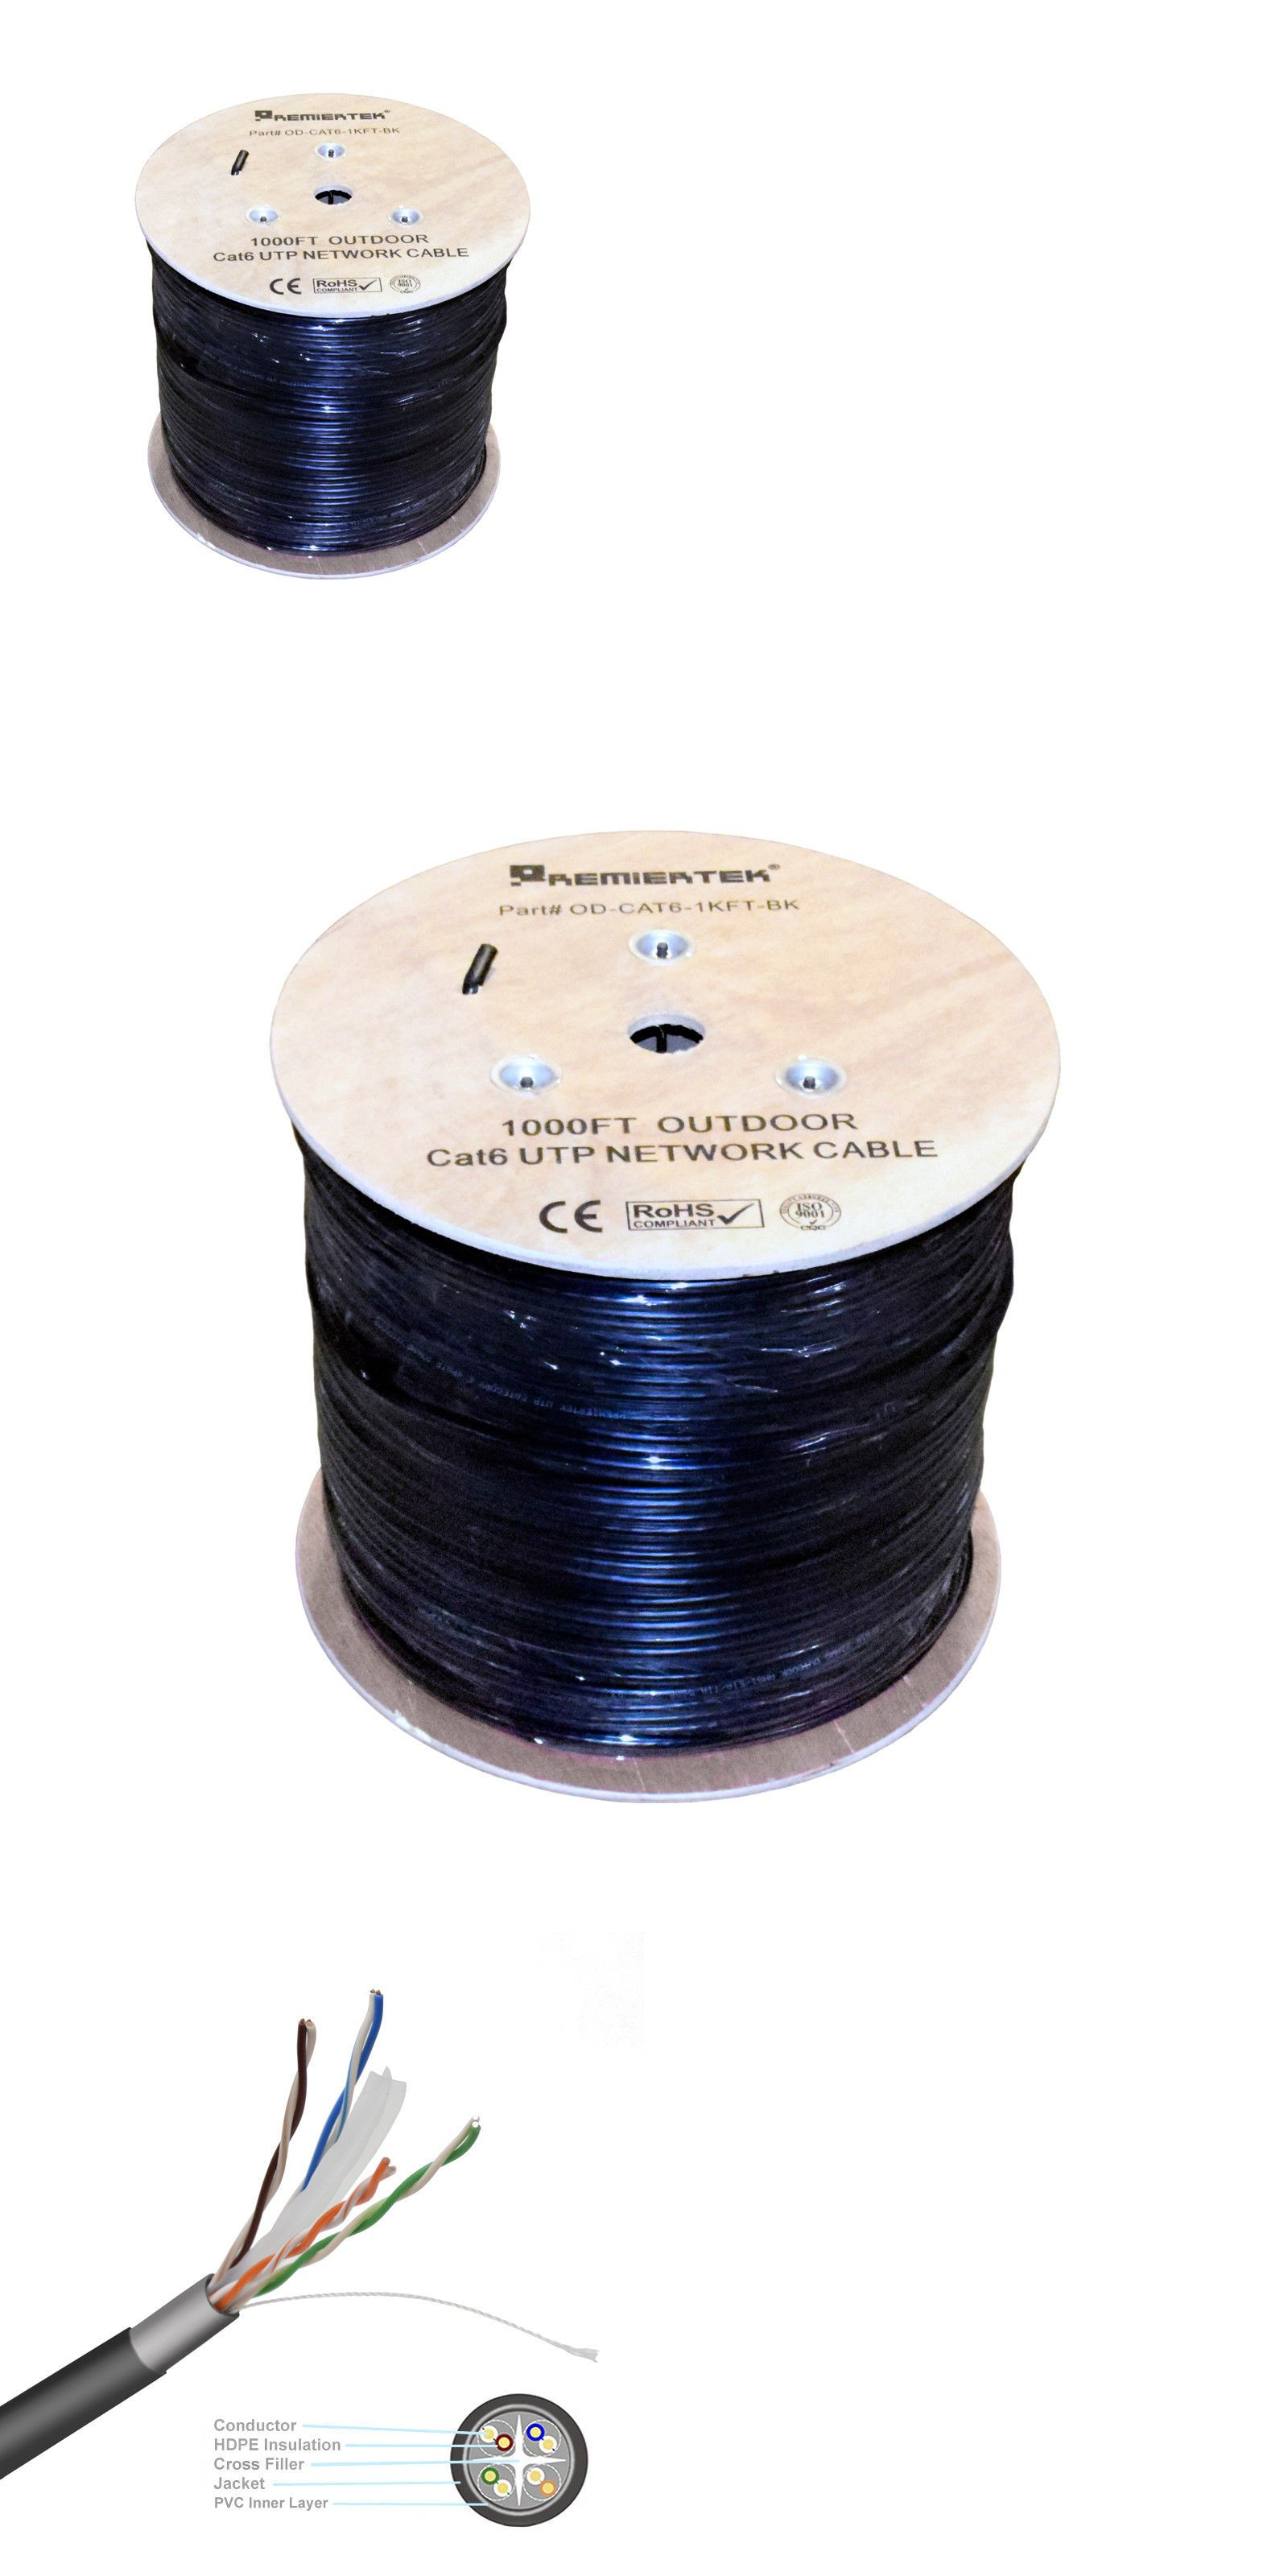 medium resolution of ethernet cables rj 45 8p8c 64035 1000 ft cat6 uv cmx 23 awg waterproof outdoor direct burial solid network cable buy it now only 65 46 on ebay